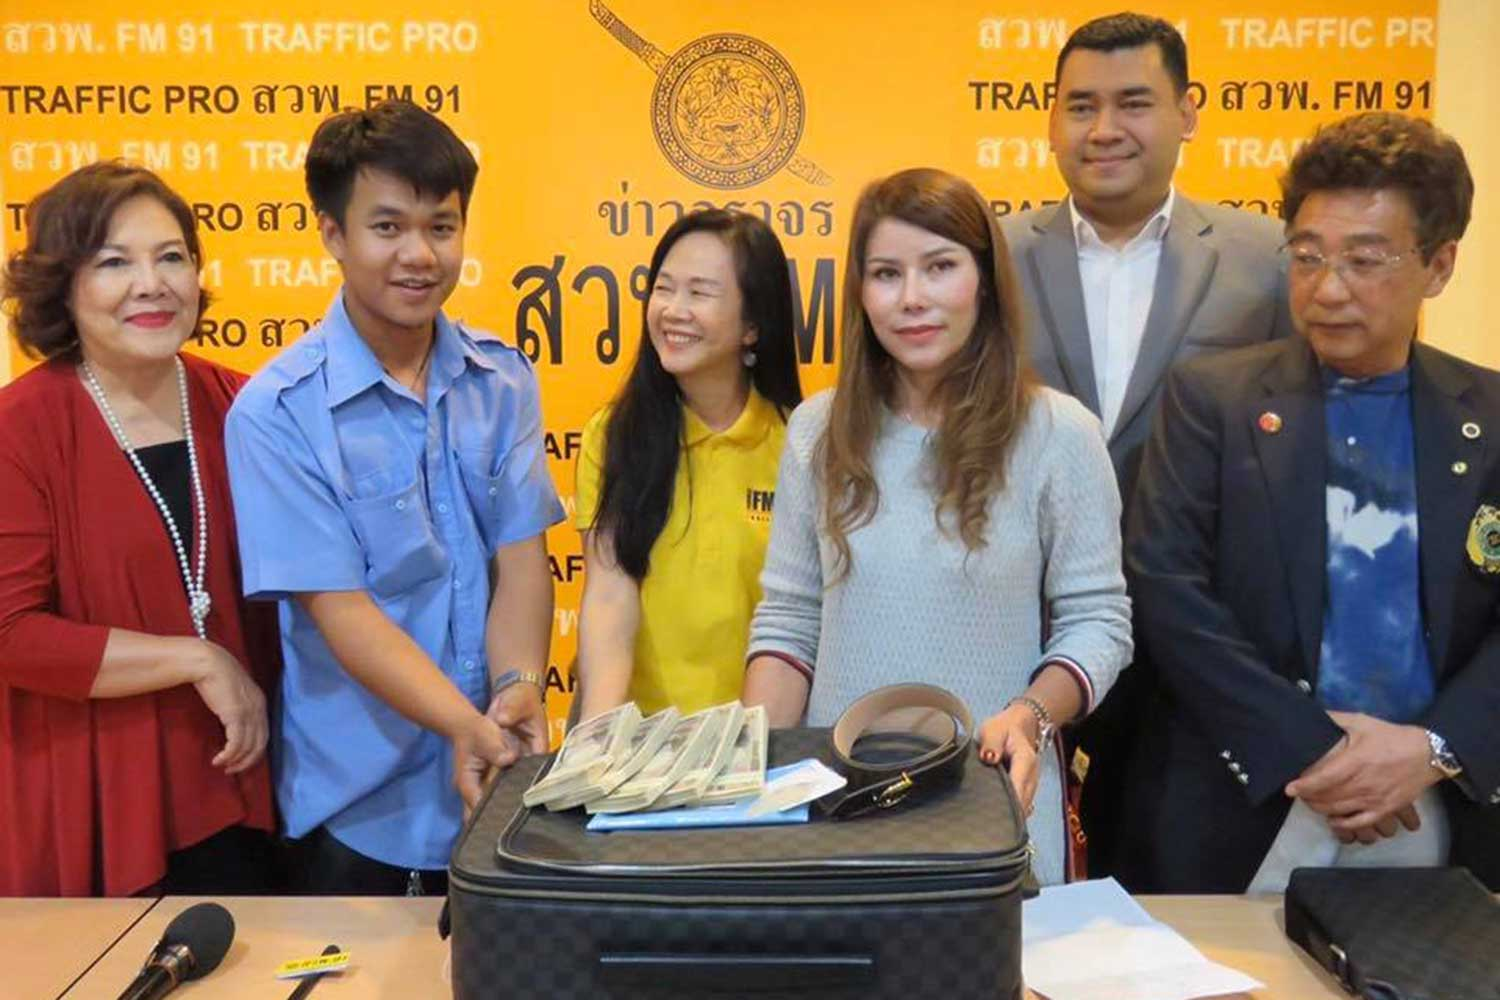 Withoon Jungphan, 22, second from left, returns cash and valuables worth about 1.5 million to a Thai businesswoman who left her bag at his cab. The handover was witnessed by executives of FM91 traffic radio station on Tuesday afternoon. (Photo taken from @fm91trafficpro Facebook page)